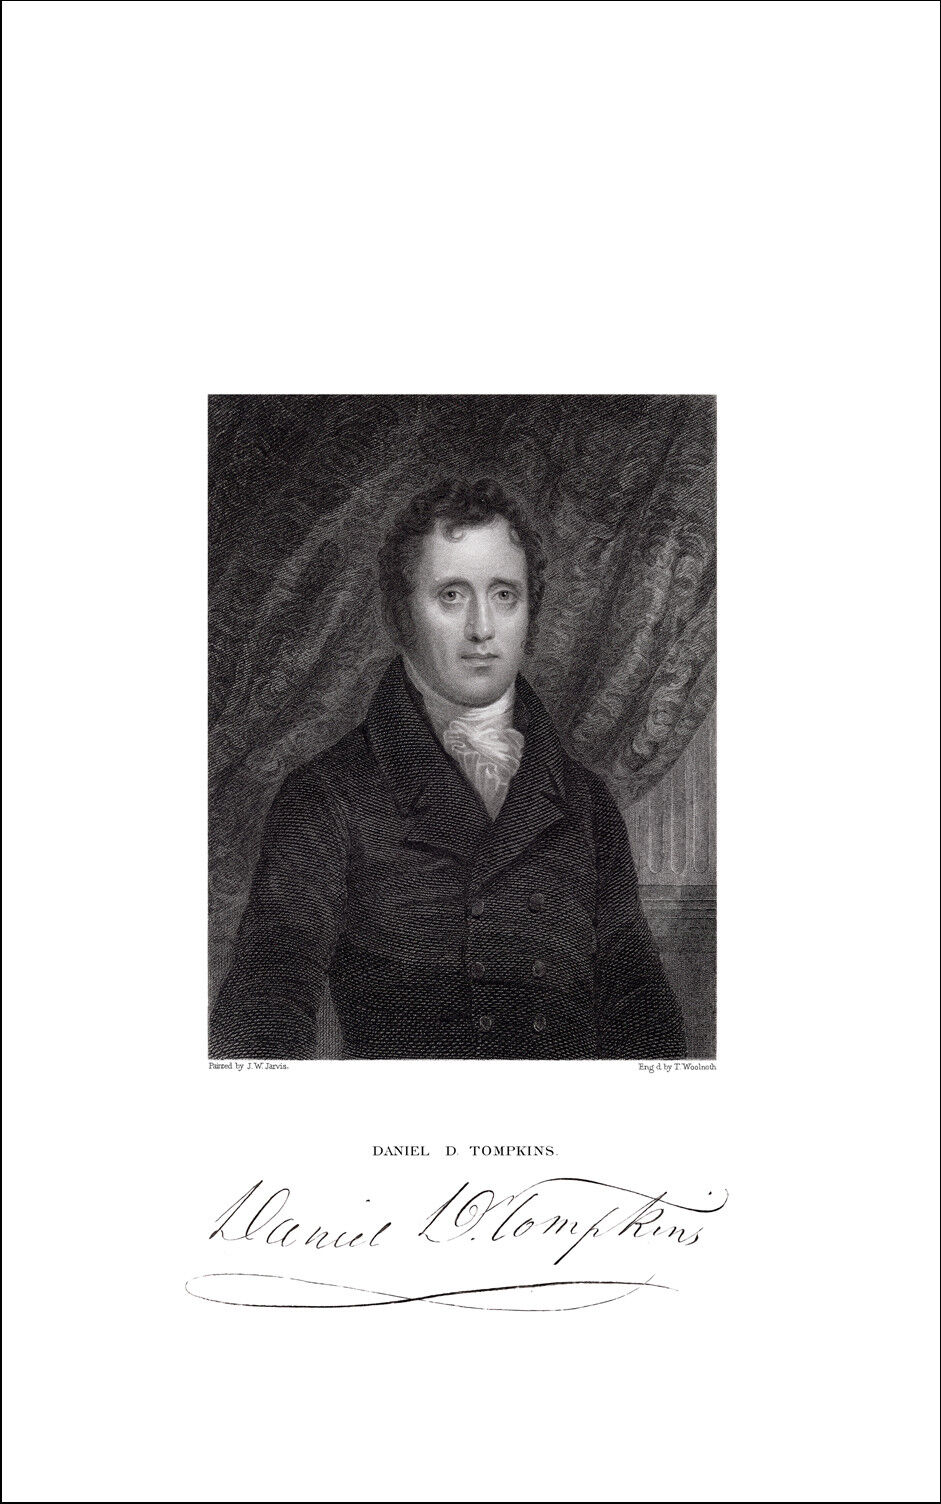 6th Vice President DANIEL D. TOMPKINS 1834 Engraving Jarvis Pinx Woolnoth Sc - $32.50